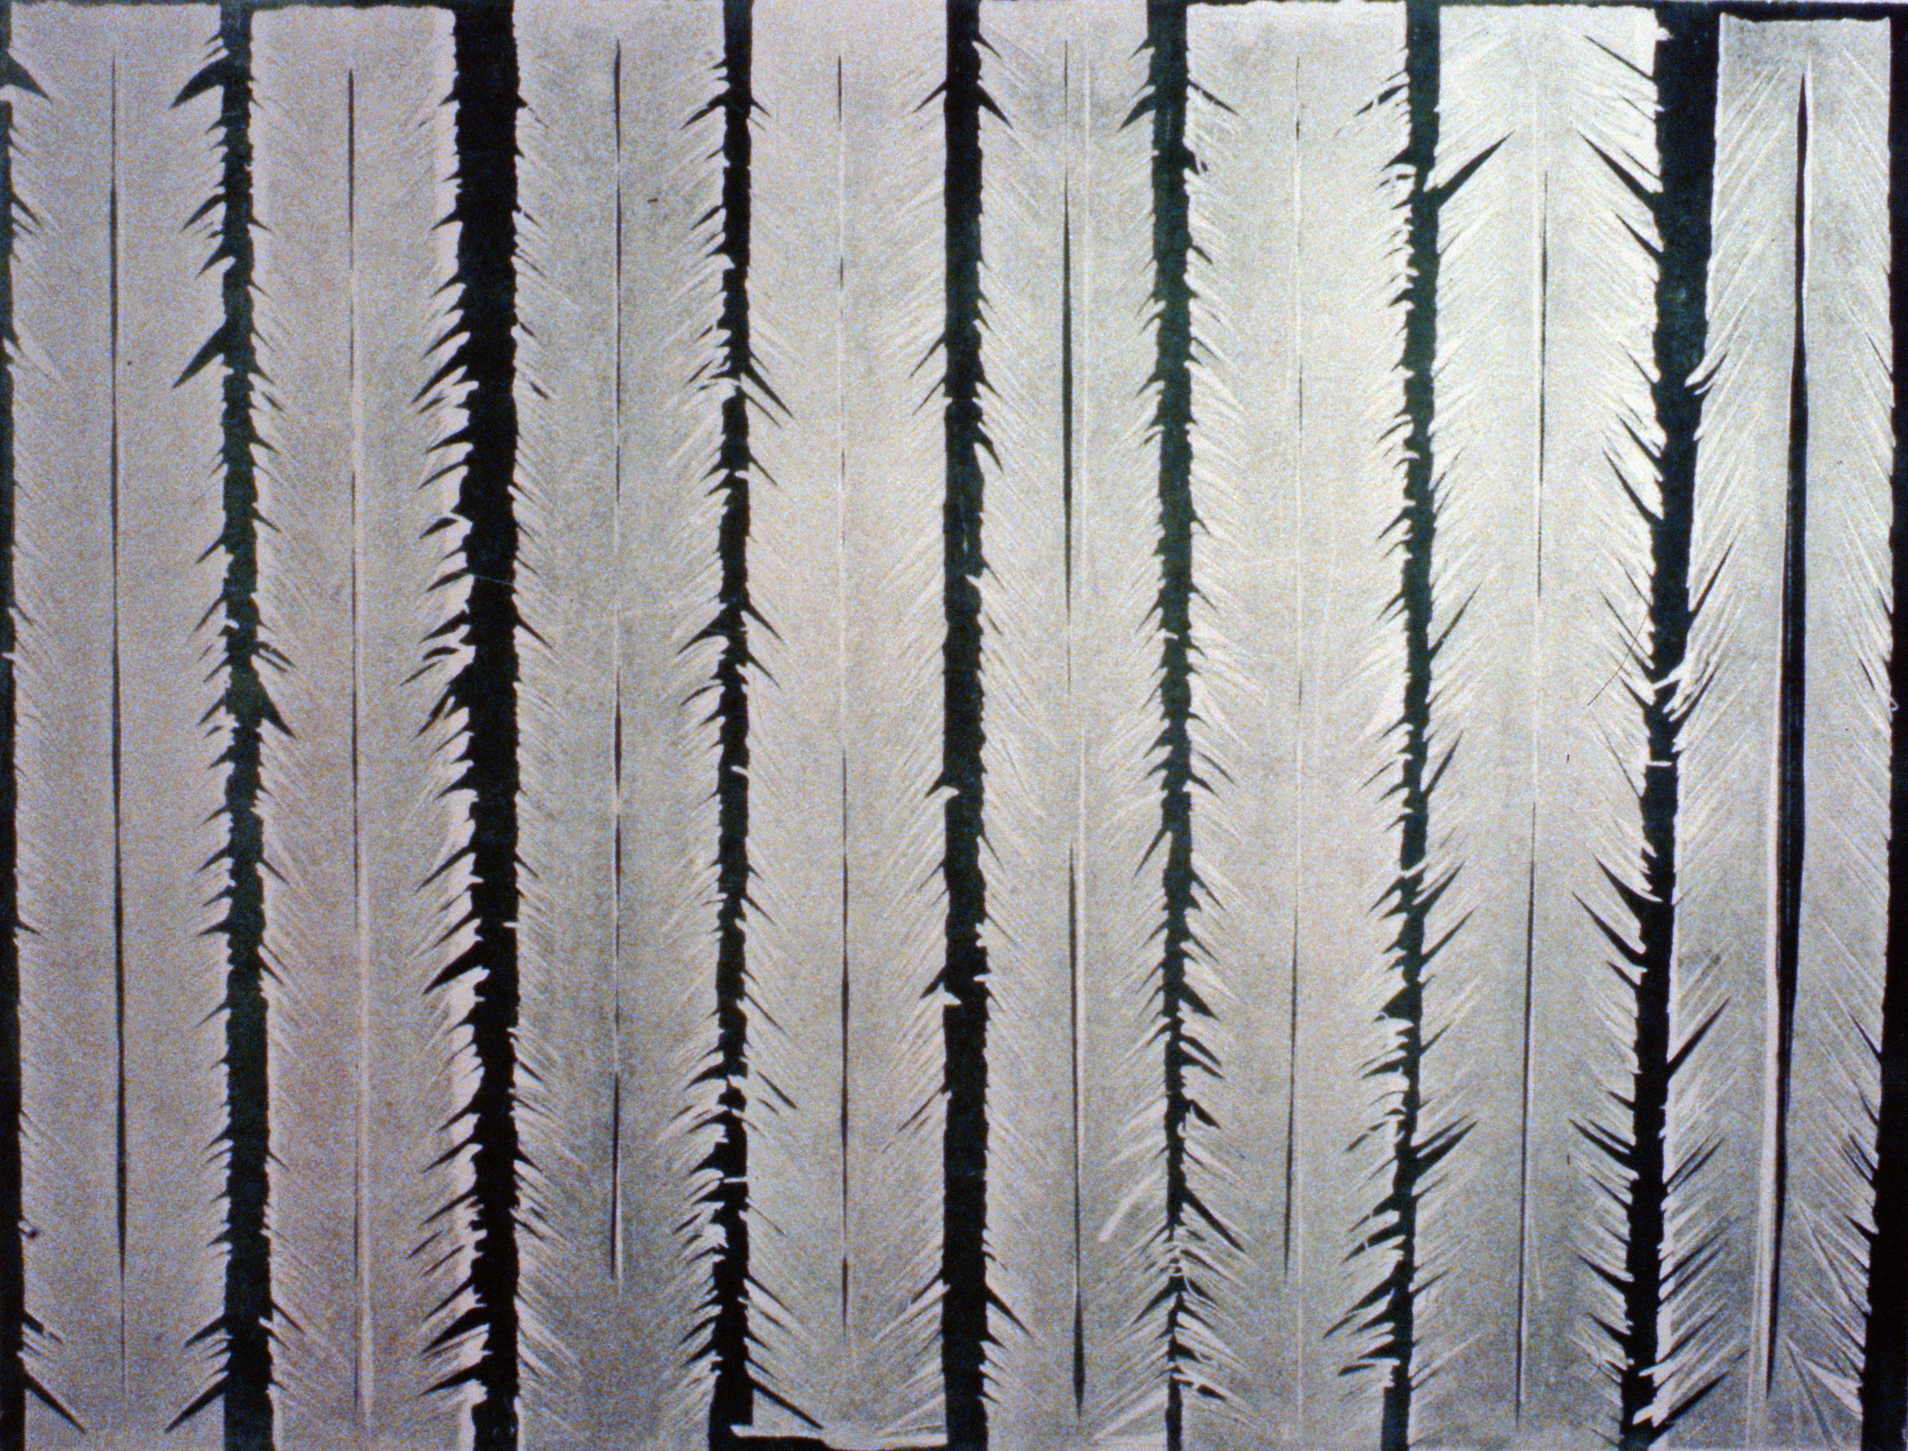 From the Forest III , 1980 , Evelyn Armstrong,serigraph with relief, edition 7/8, 81.3 x 61 cm,1982.02.01. Gift of Ann-Charlotte Bergland.